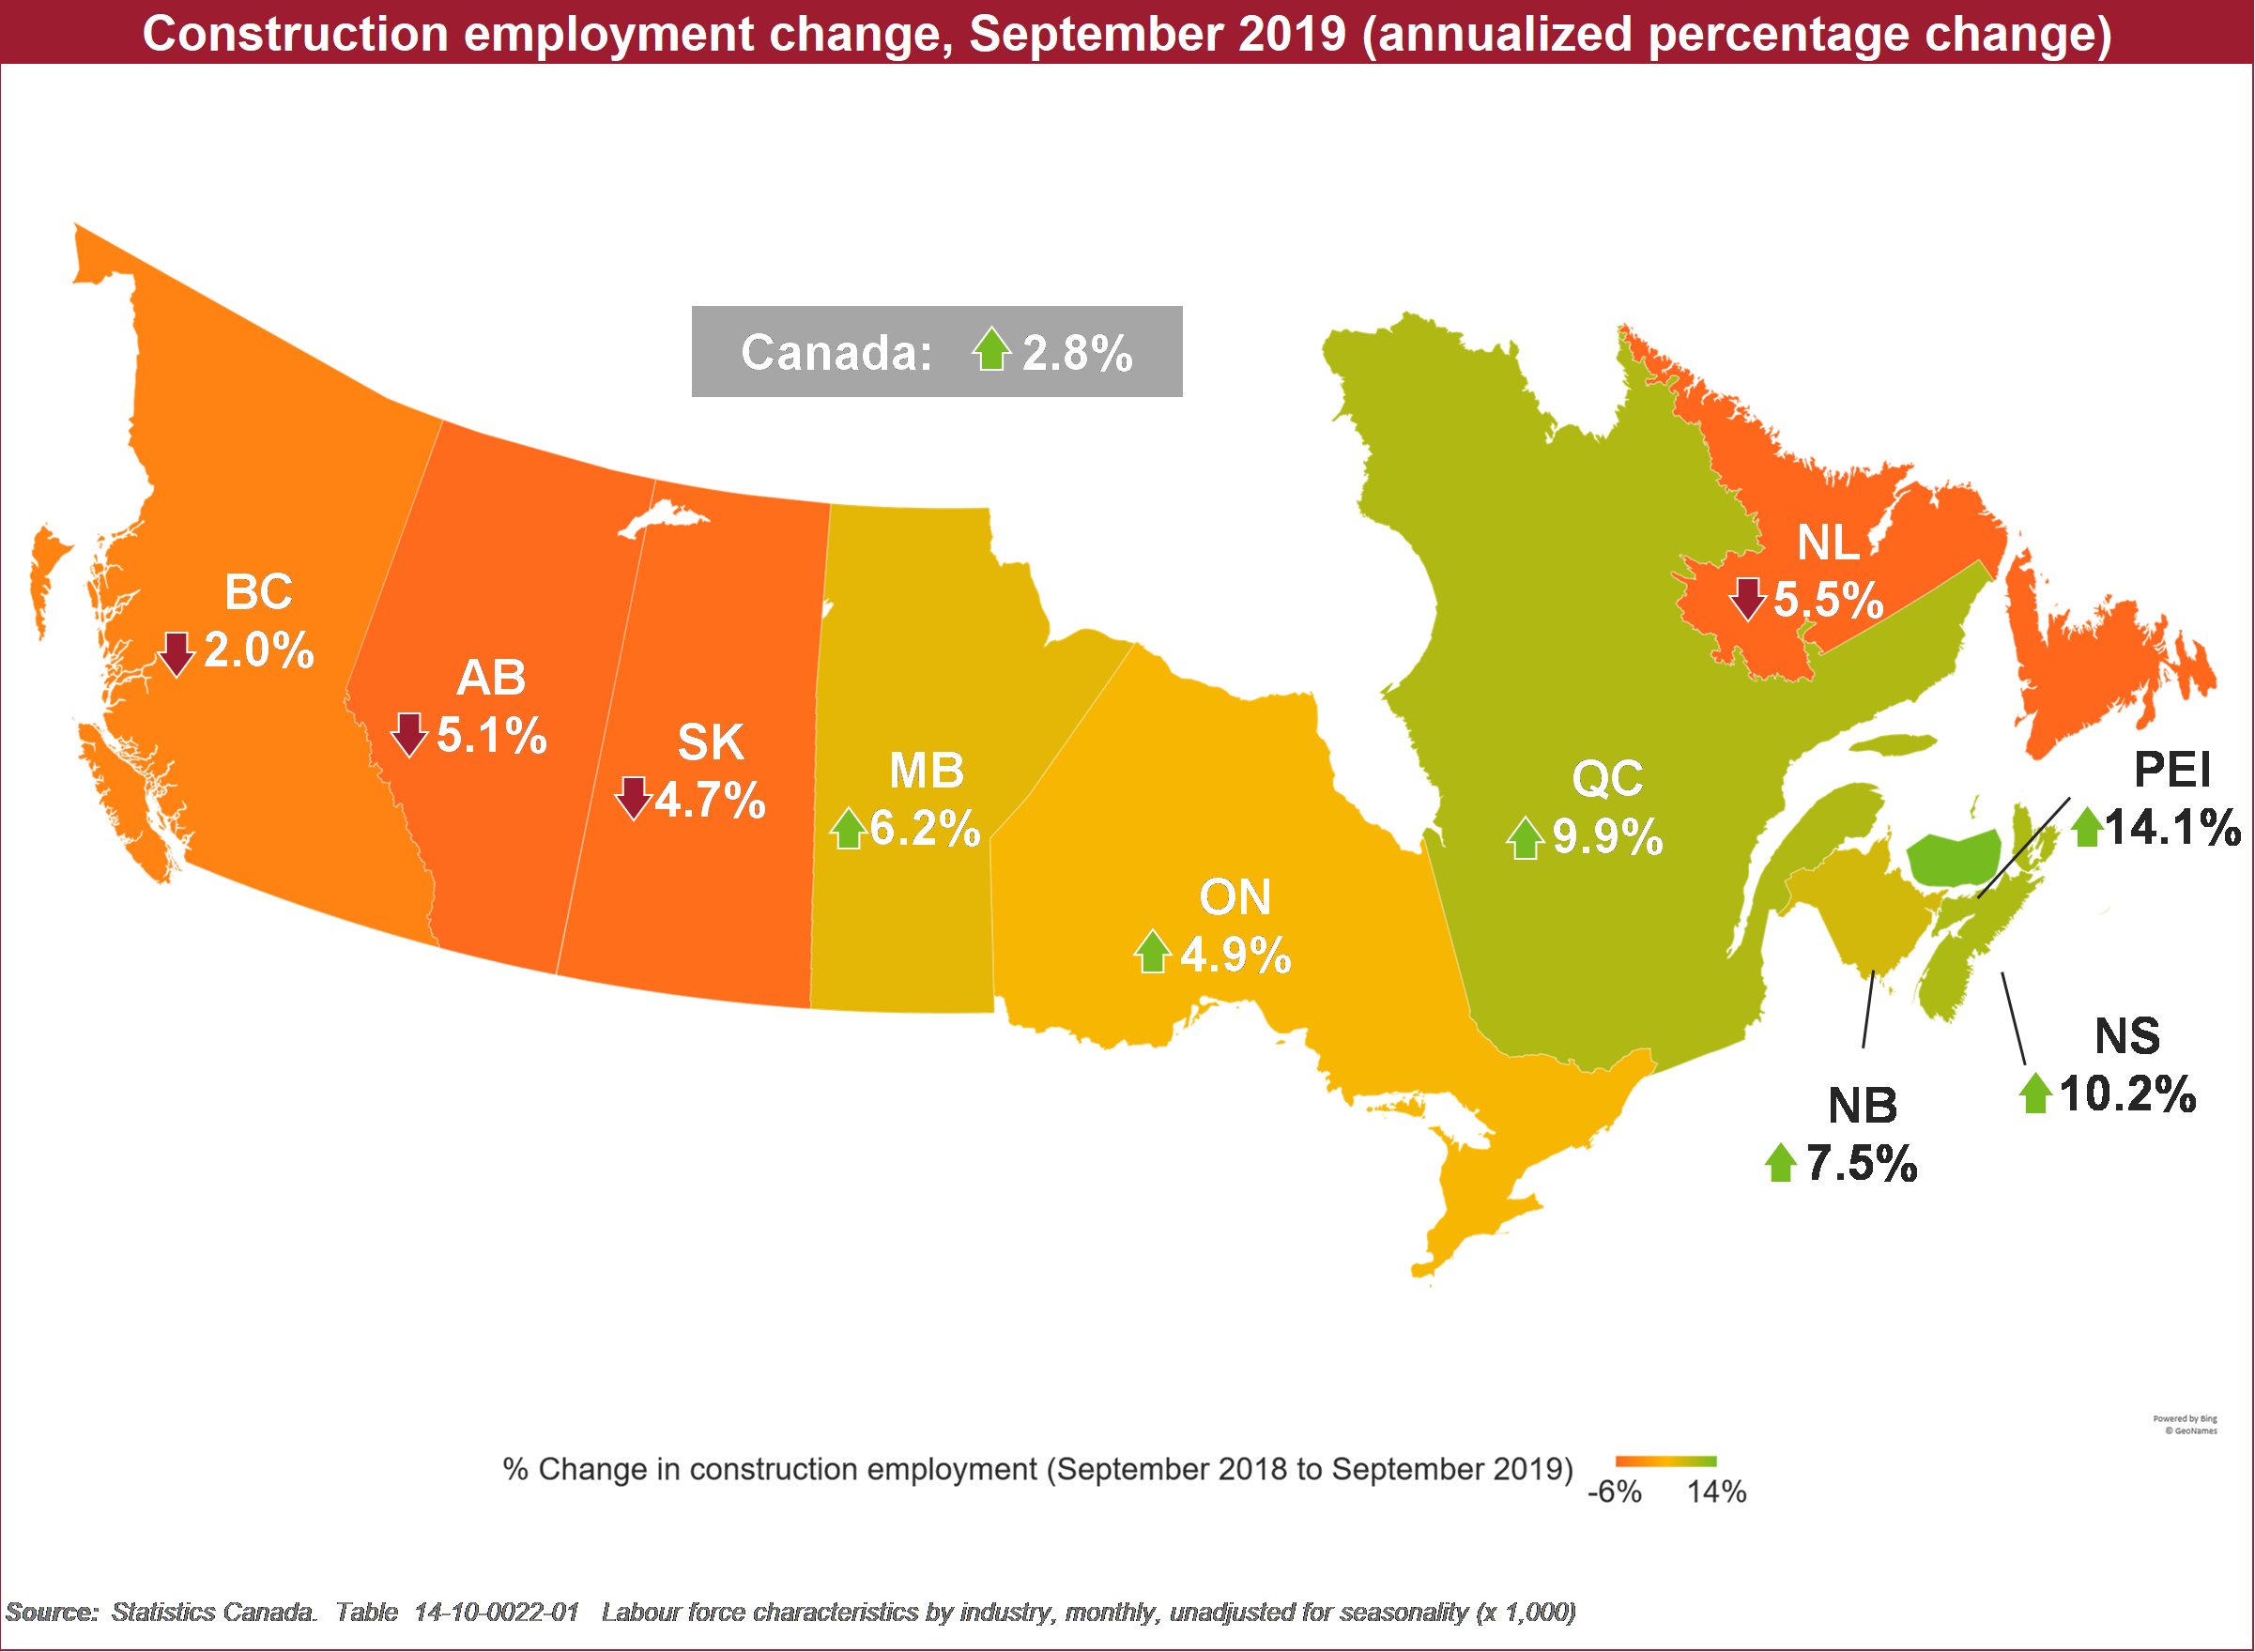 Map of Canada showing construction employment change, September 2019 (annualized percentage chance) by province